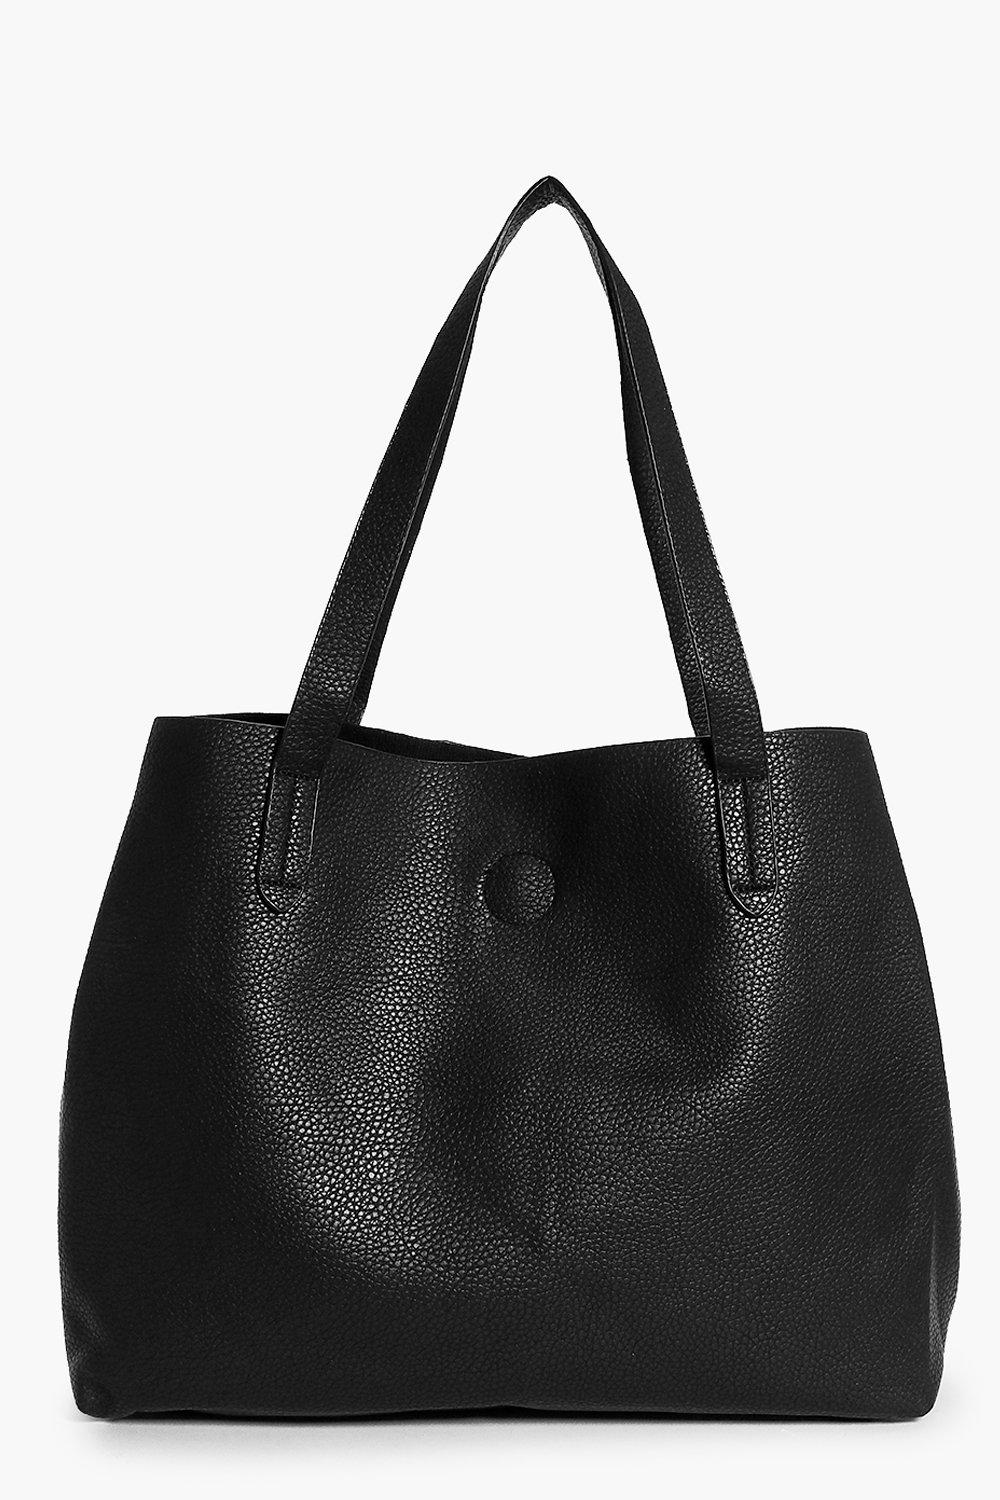 Basic Popper Shopper Bag - black - Victoria Basic